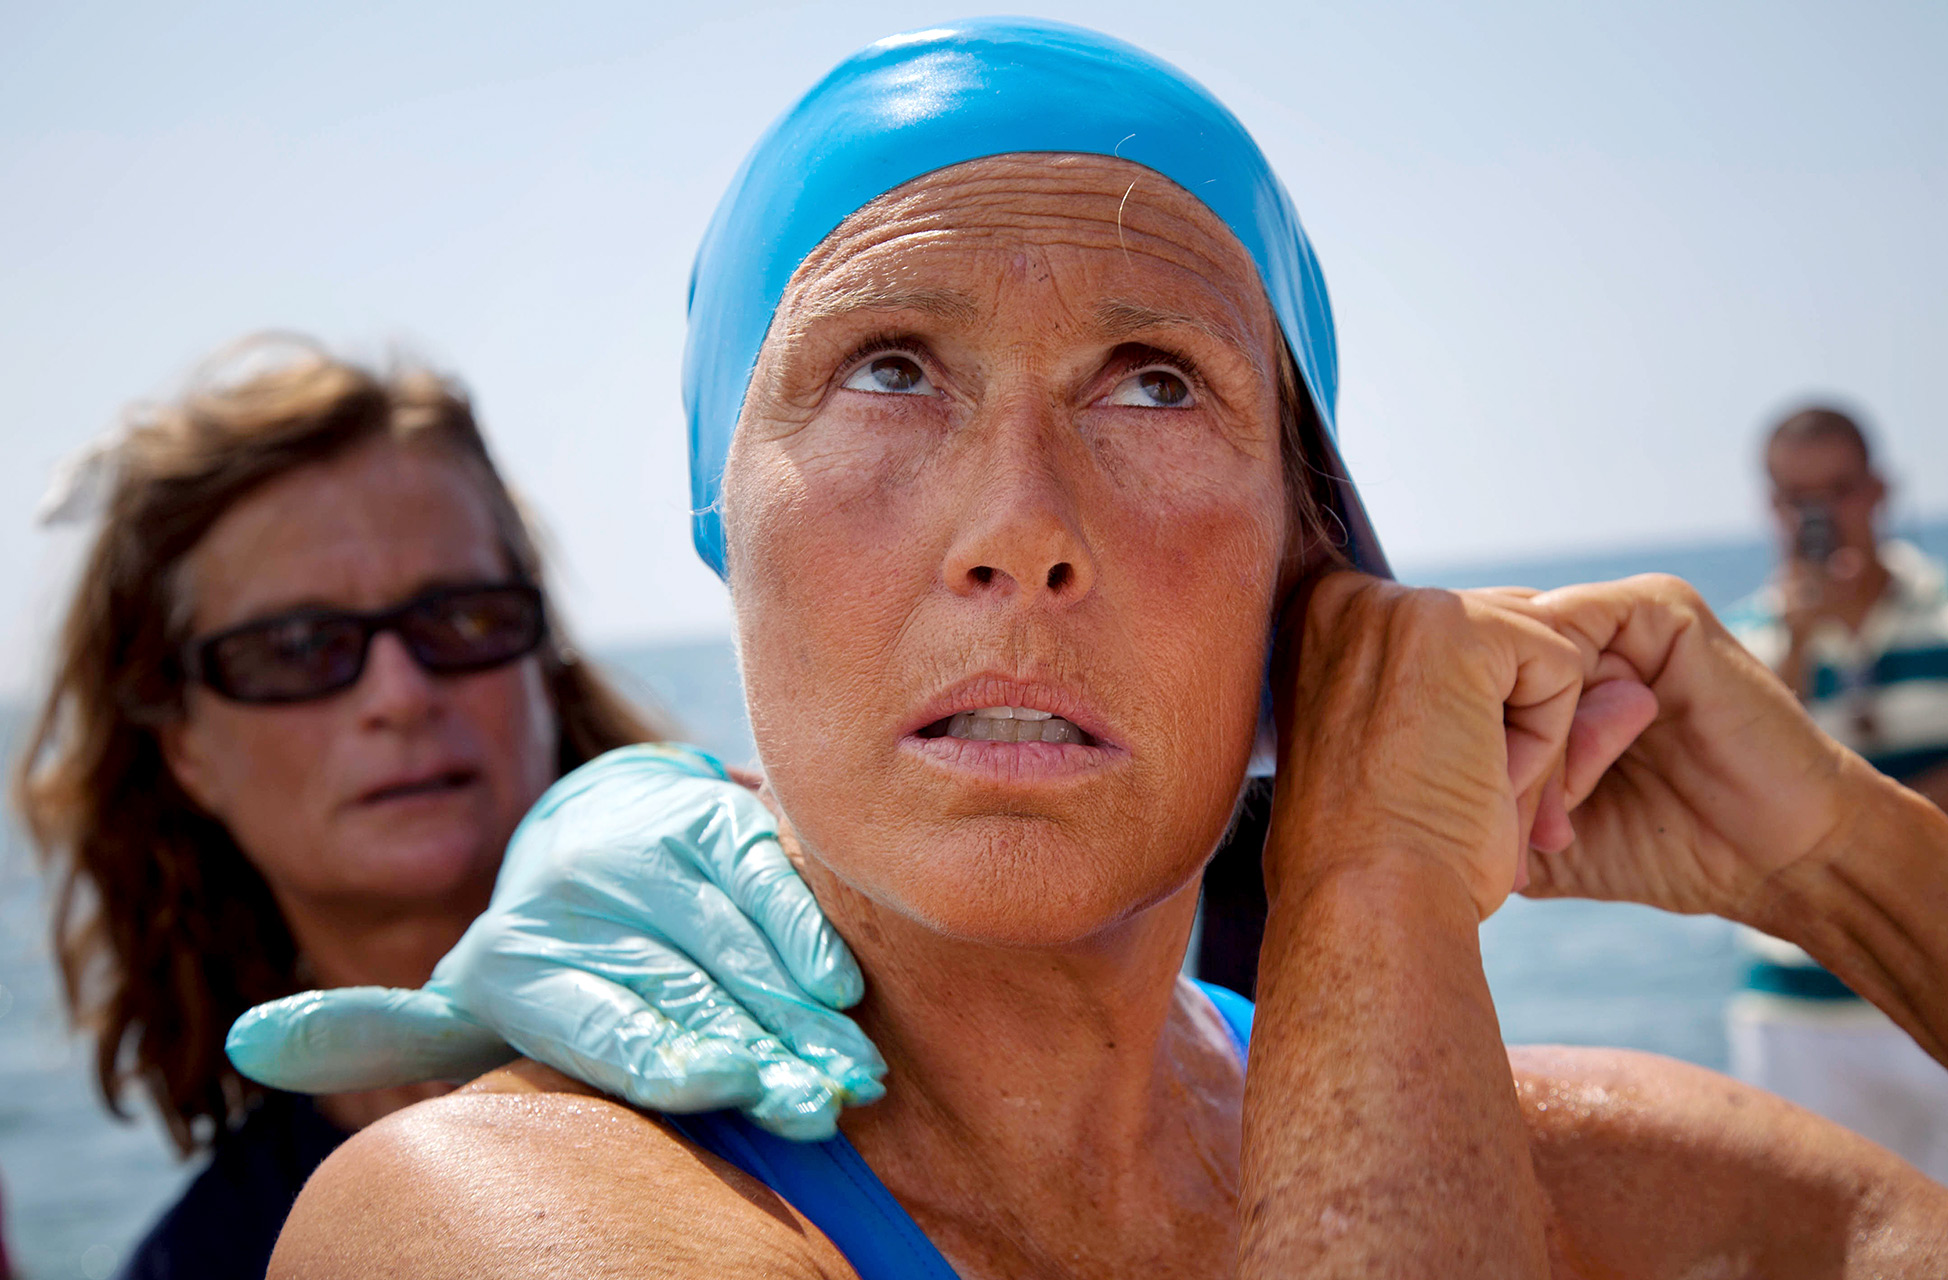 Despite four failed attempts, Diana Nyad said she never considered giving up on her dream of swimming from Cuba to Florida.